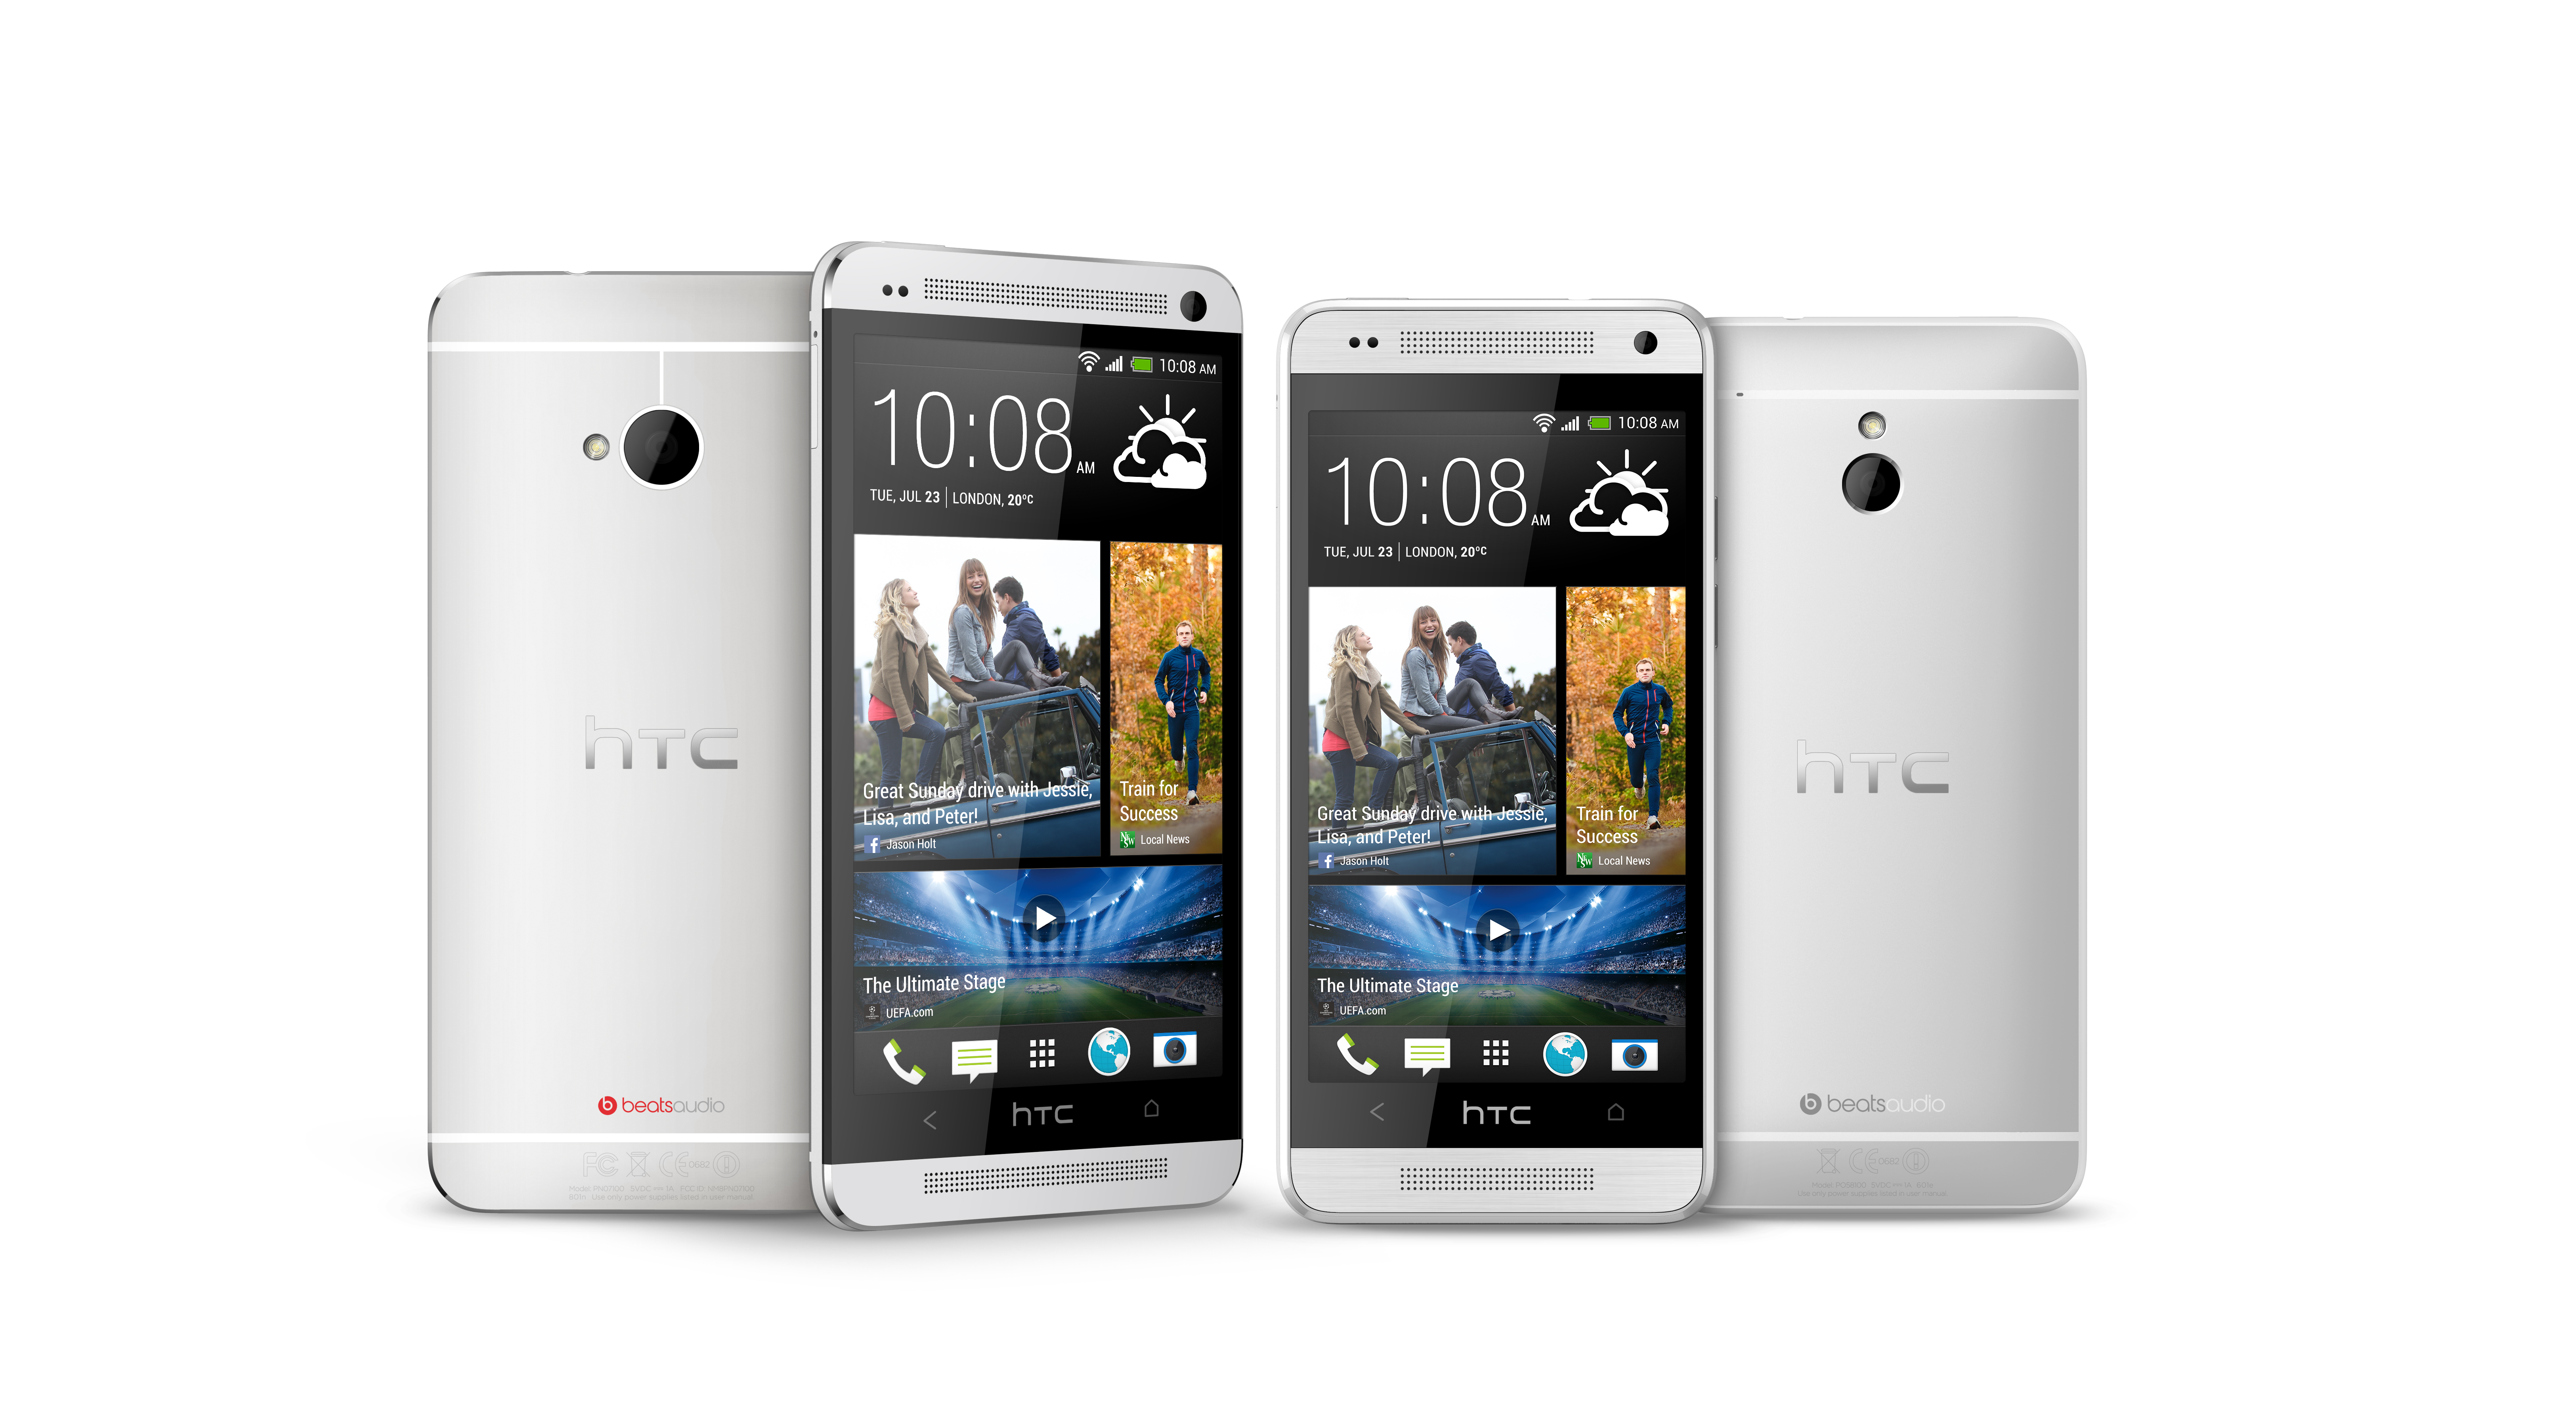 htc one mini sales banned in the uk following nokia injunction